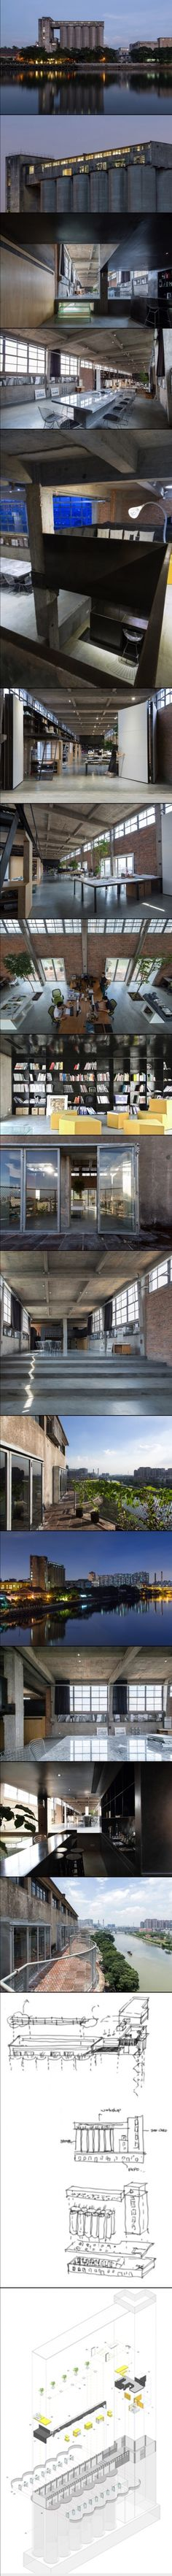 Silo-top Studio In 2012, O-office transformed the top floor of a 1960s' silo building in the oldest beer factory of Guangzhou, the central city of southern China. The 38-metre-high silo building locates on the south bank of one branch of the Pearl River, confronting the generic housing highrises and looking south to the city's old downtown. The top floor used to be the inlet level for the wheat berry to be fill in the 12 silo's below, thus full of square holes on it.